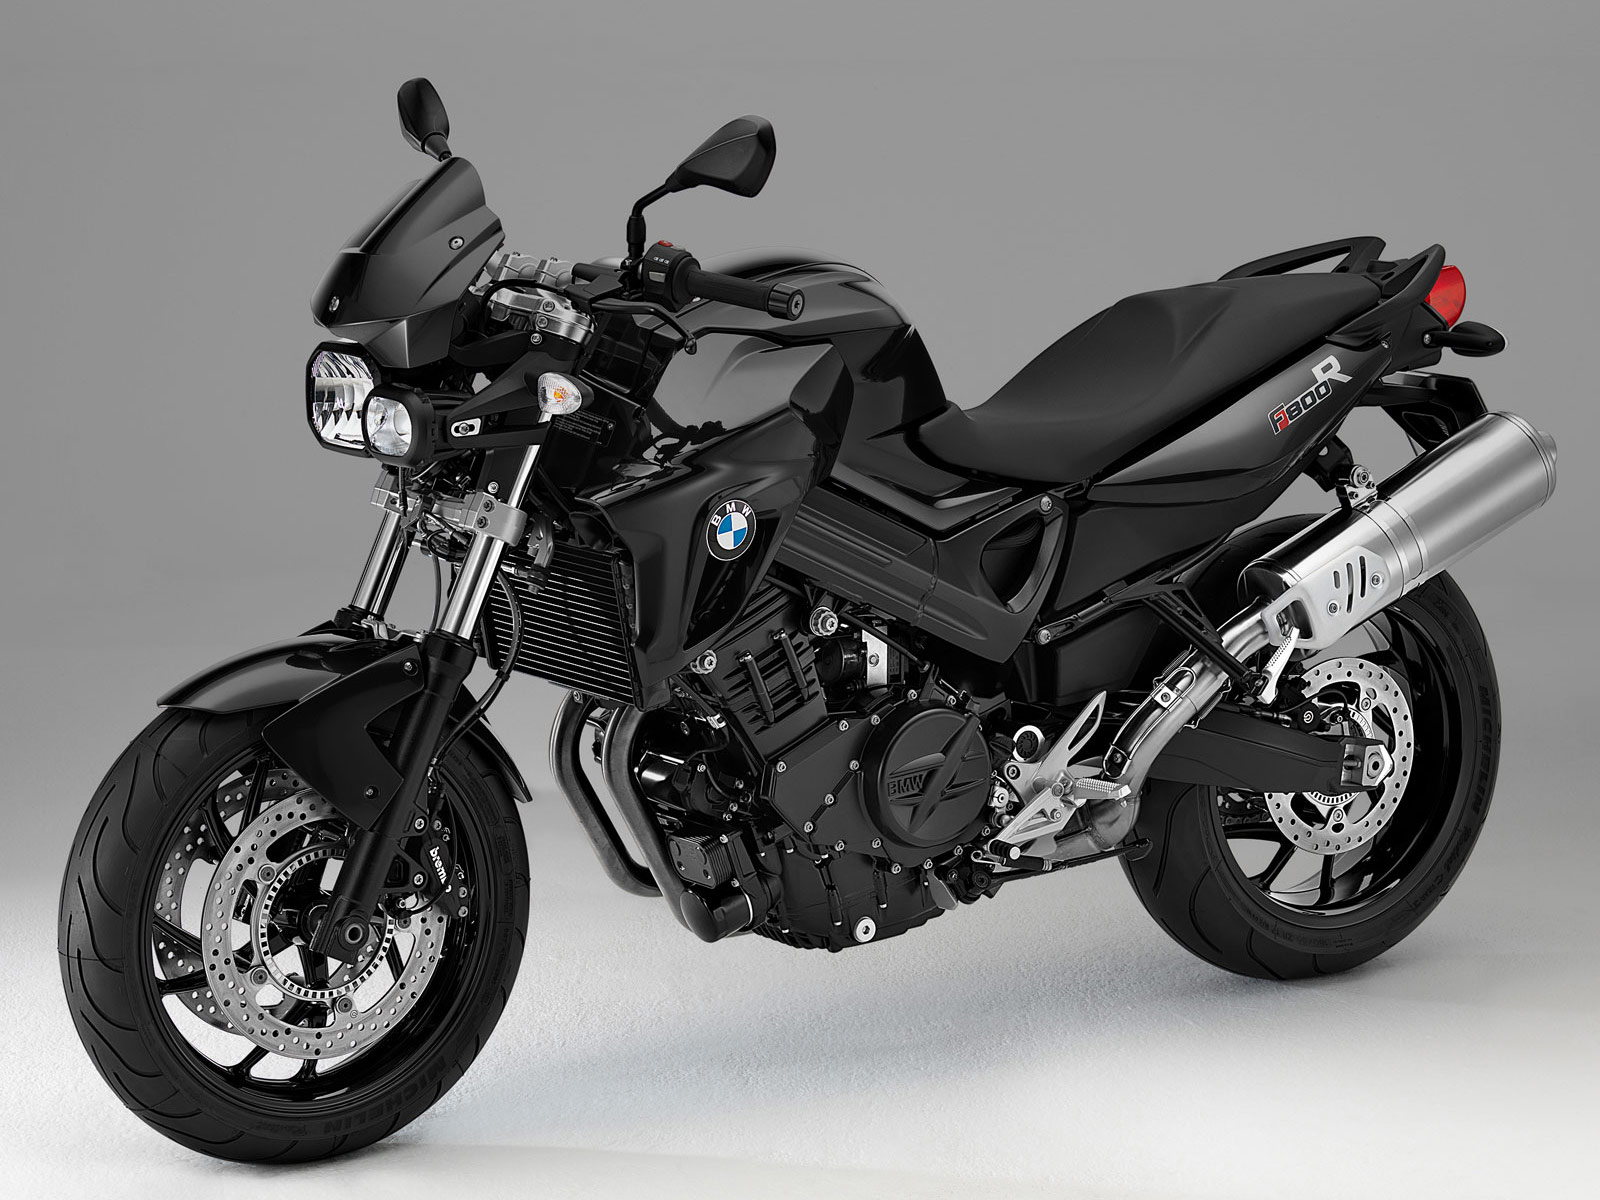 2013 bmw f800r motorcycle insurance information. Black Bedroom Furniture Sets. Home Design Ideas